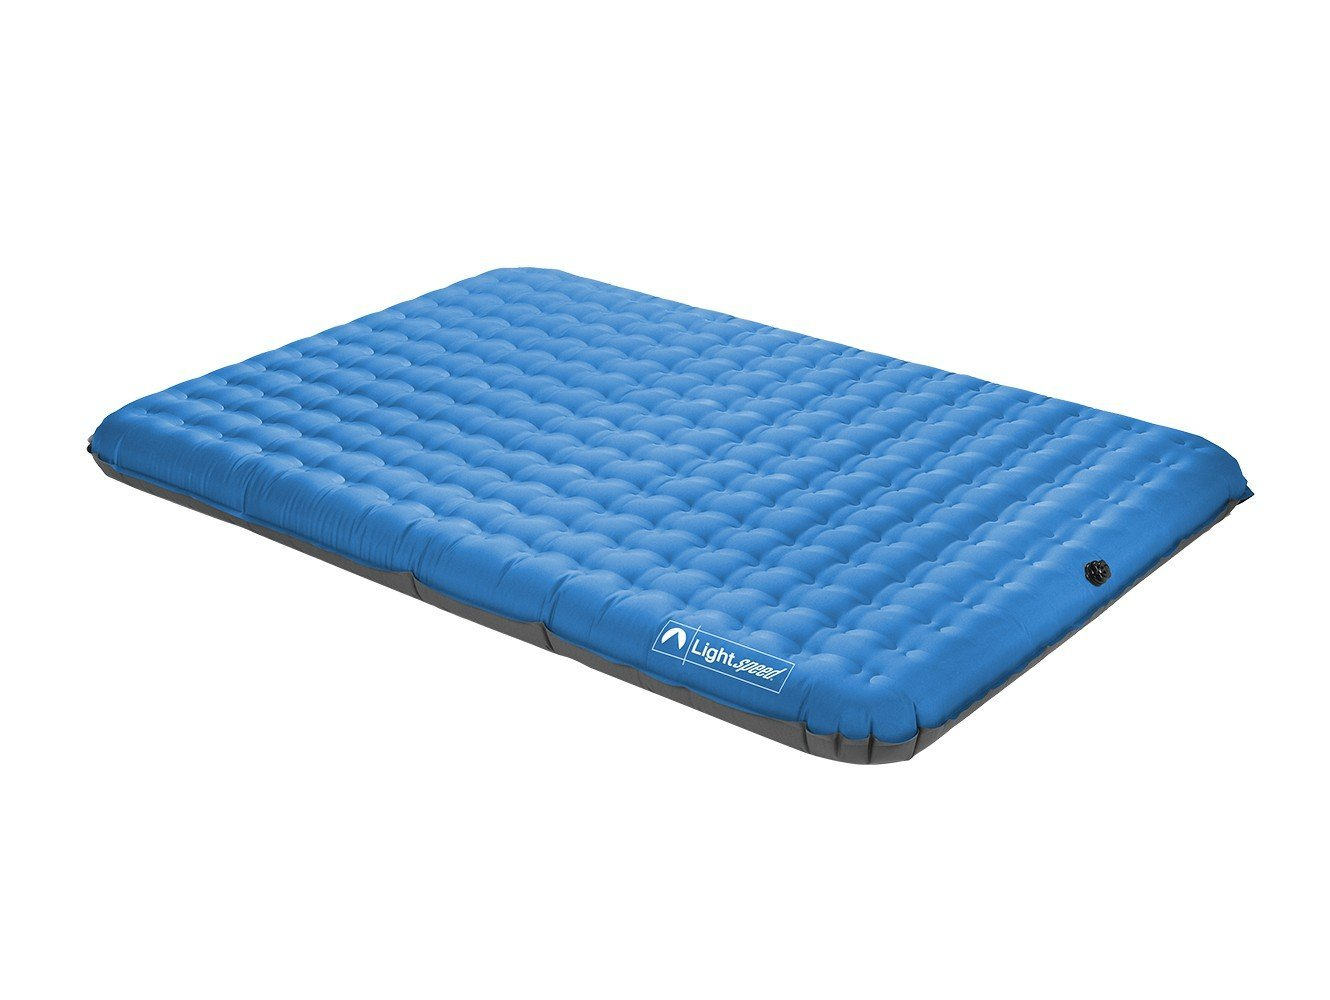 Camping Gear- LightSpeed Outdoors TPU Air Bed - 50campfires - YouTube